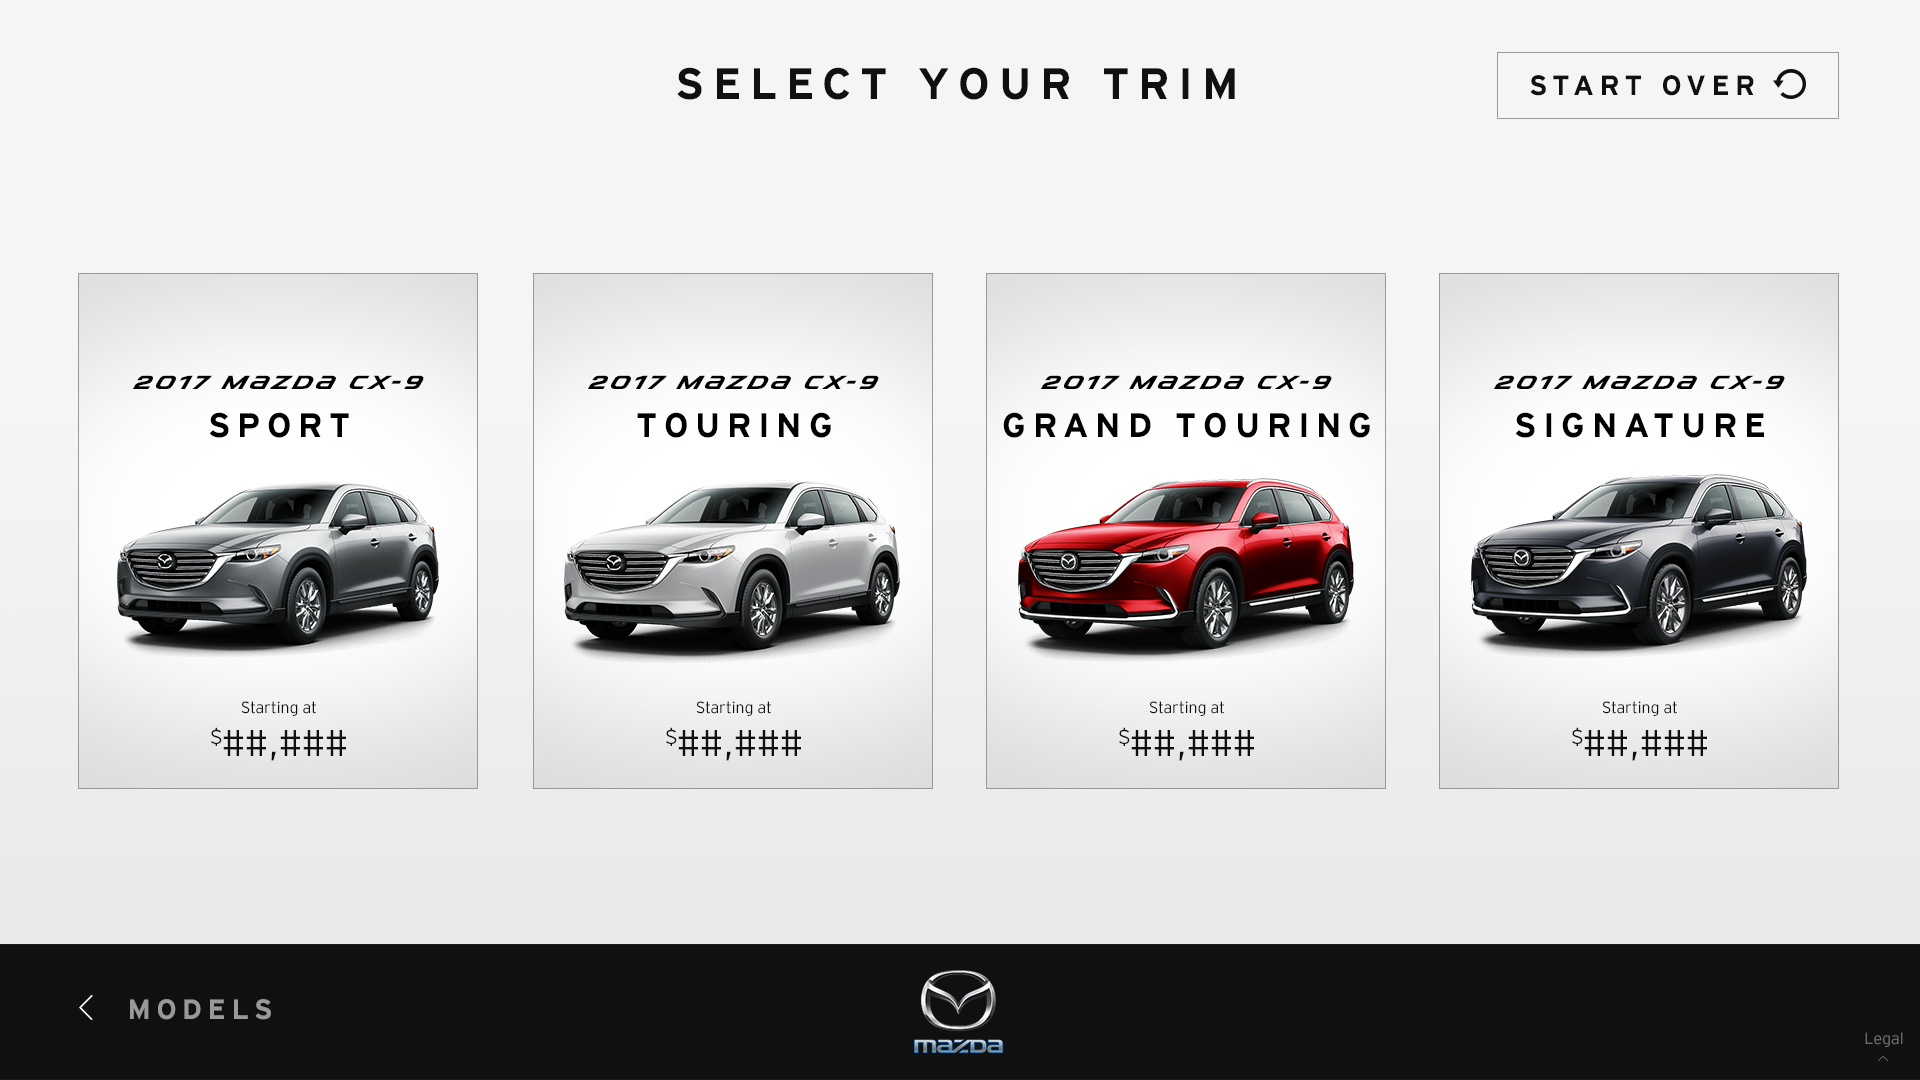 Mazda_colorCustomizer_2017_trim_R6